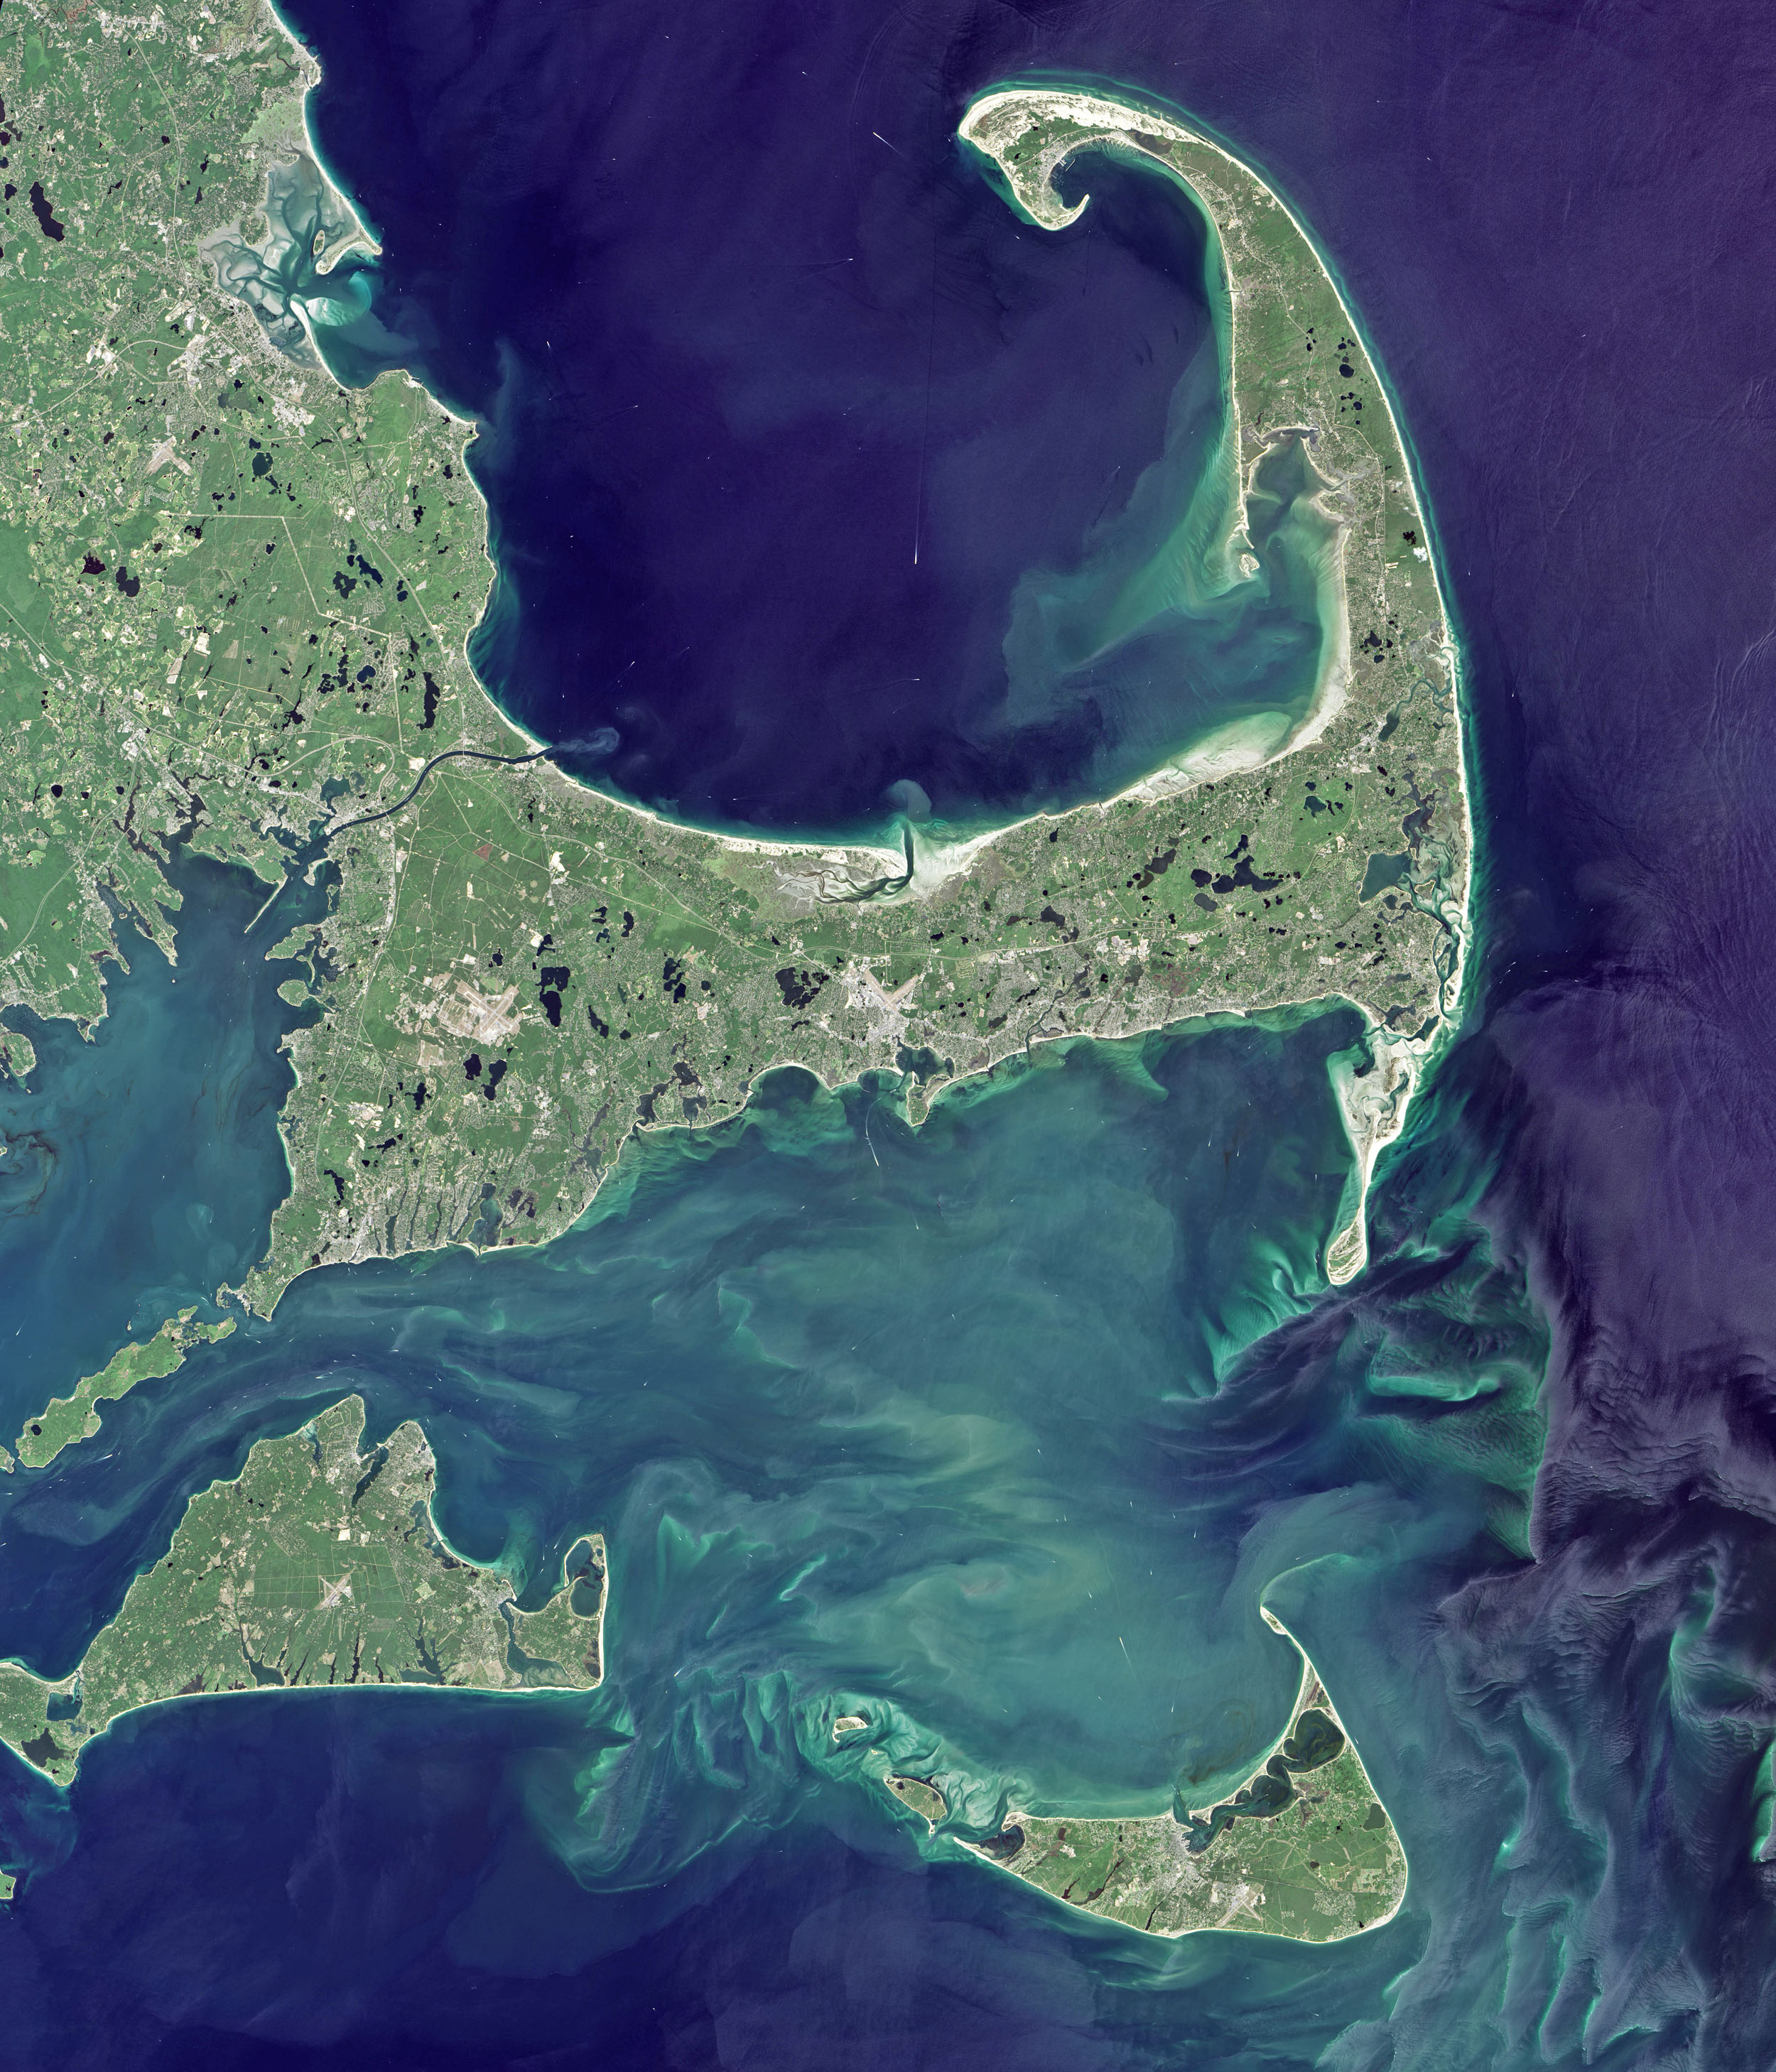 Cape Cod National Seashore • Earth.com